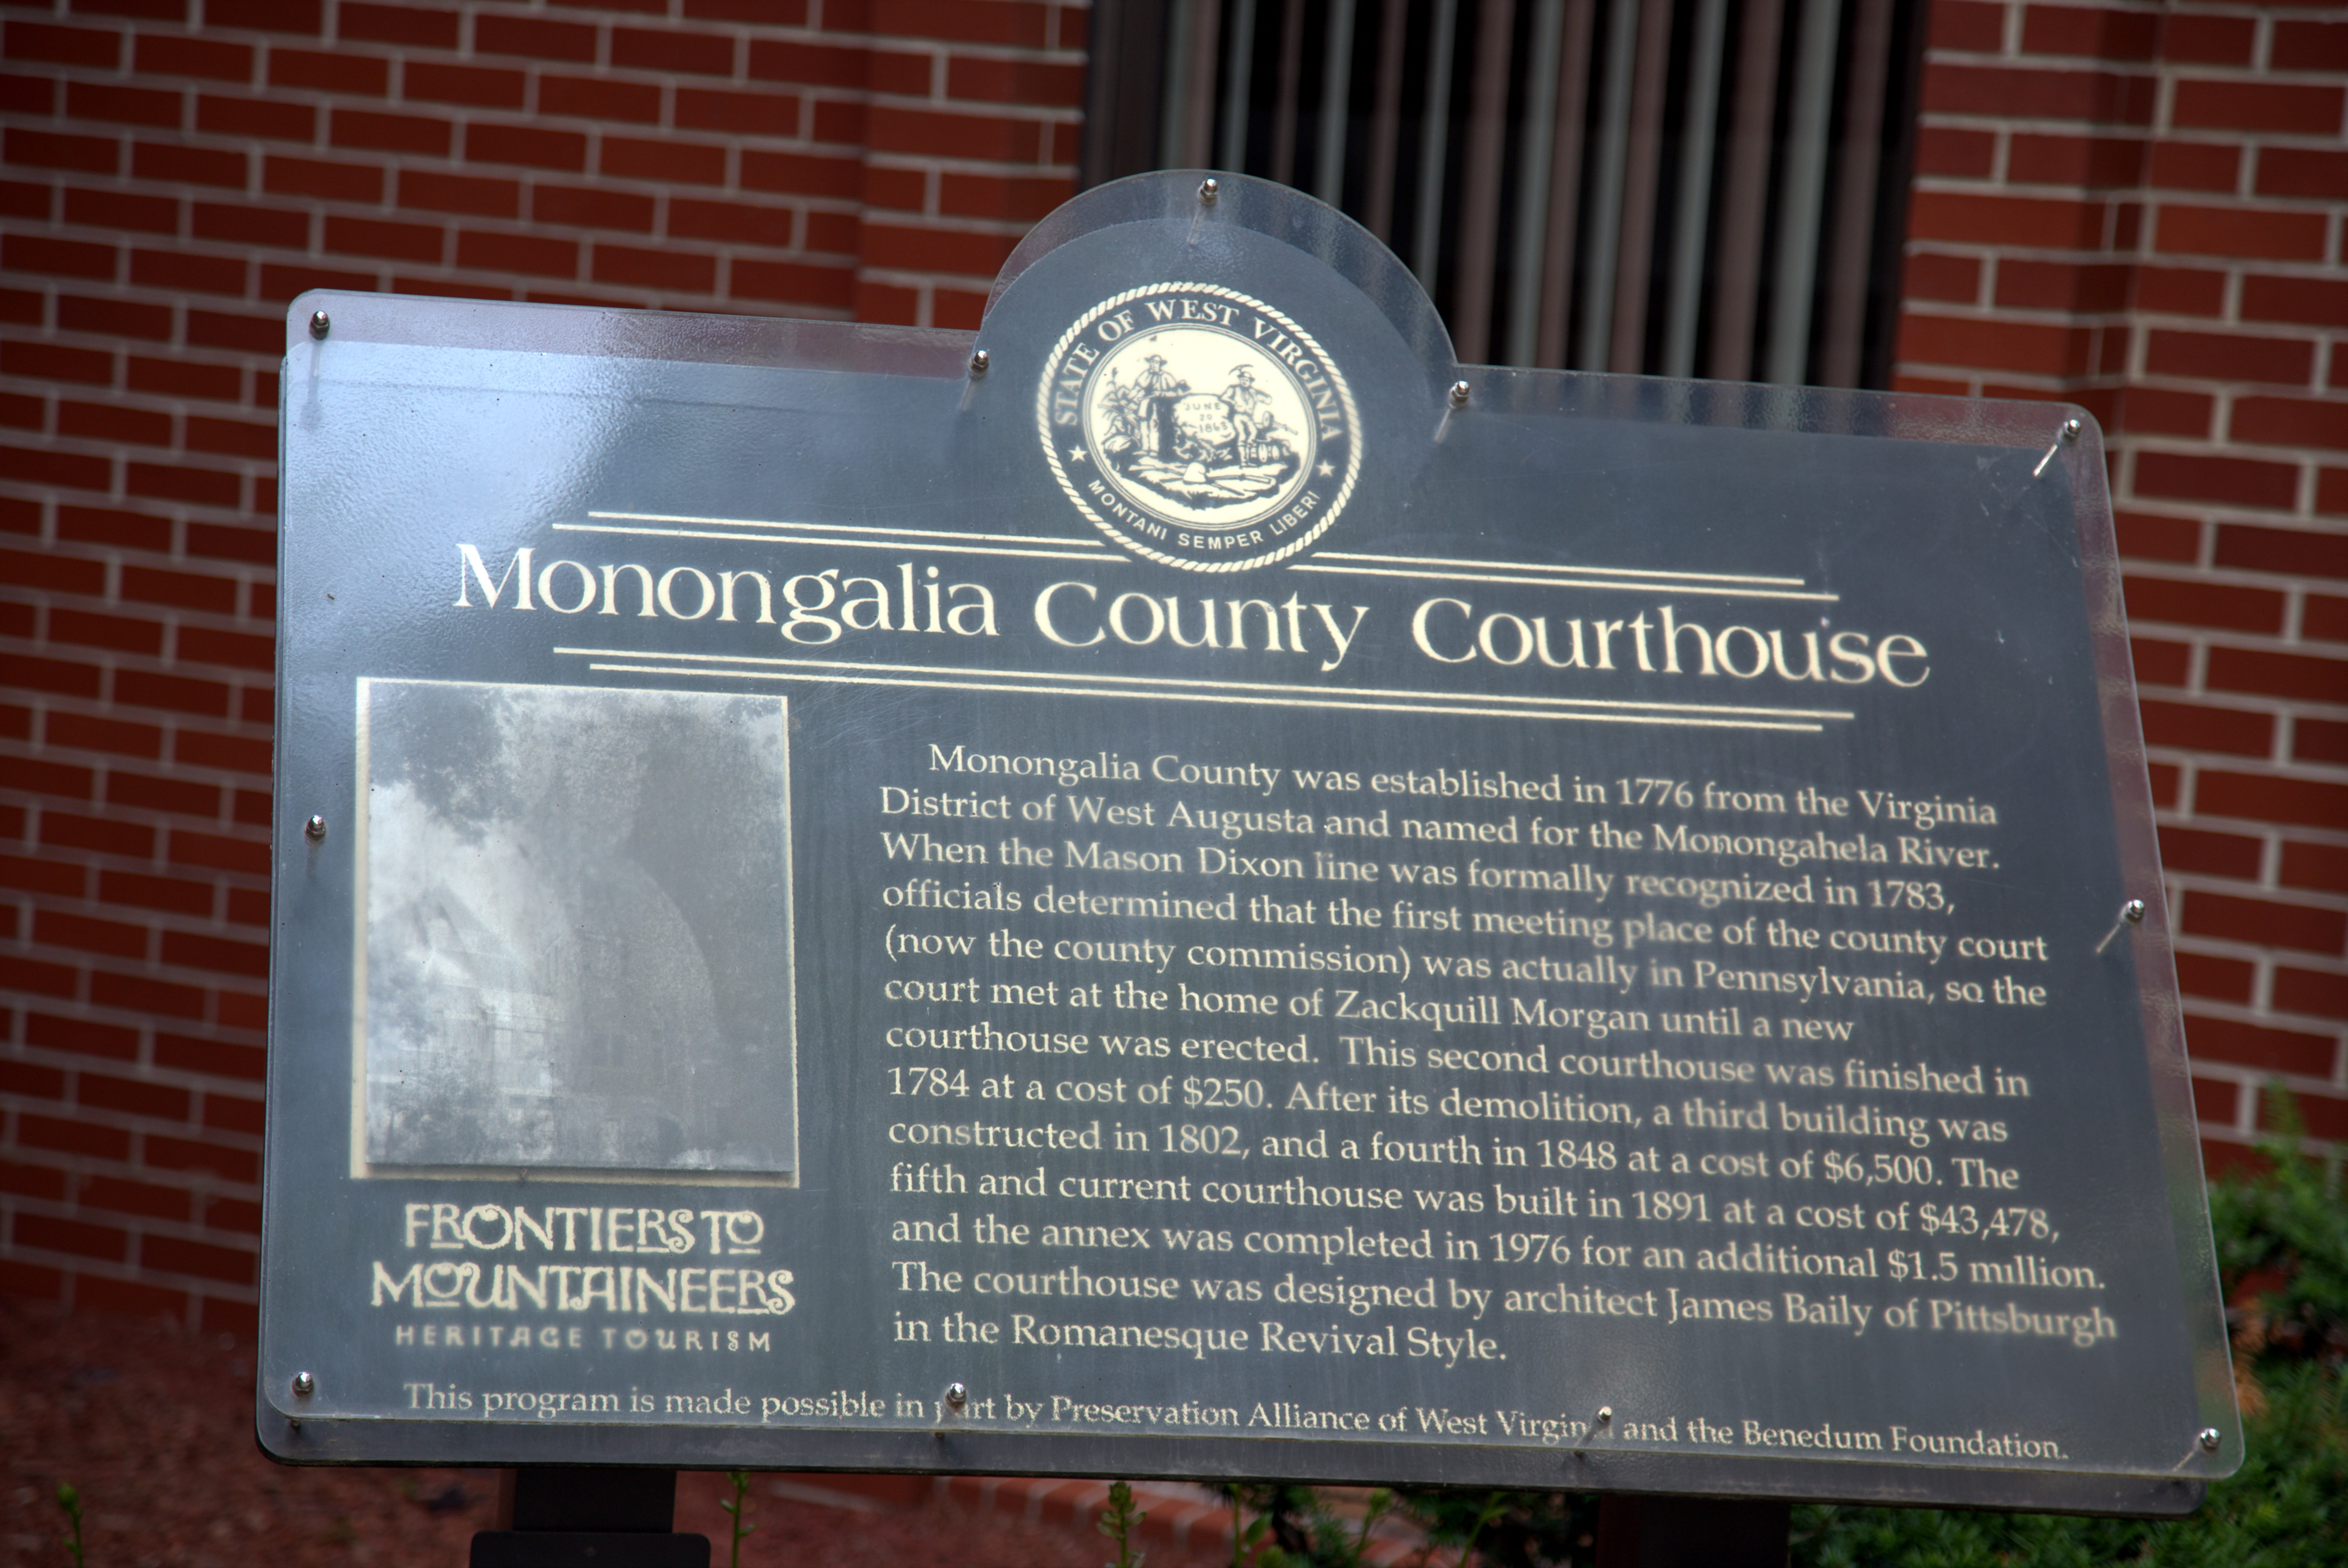 monongalia county jewish singles Morgantown — the monongalia county sheriff's department has released the names of the victims of the single-vehicle accident that occurred on wednesday july 25 at the interstate 68/79 interchange.